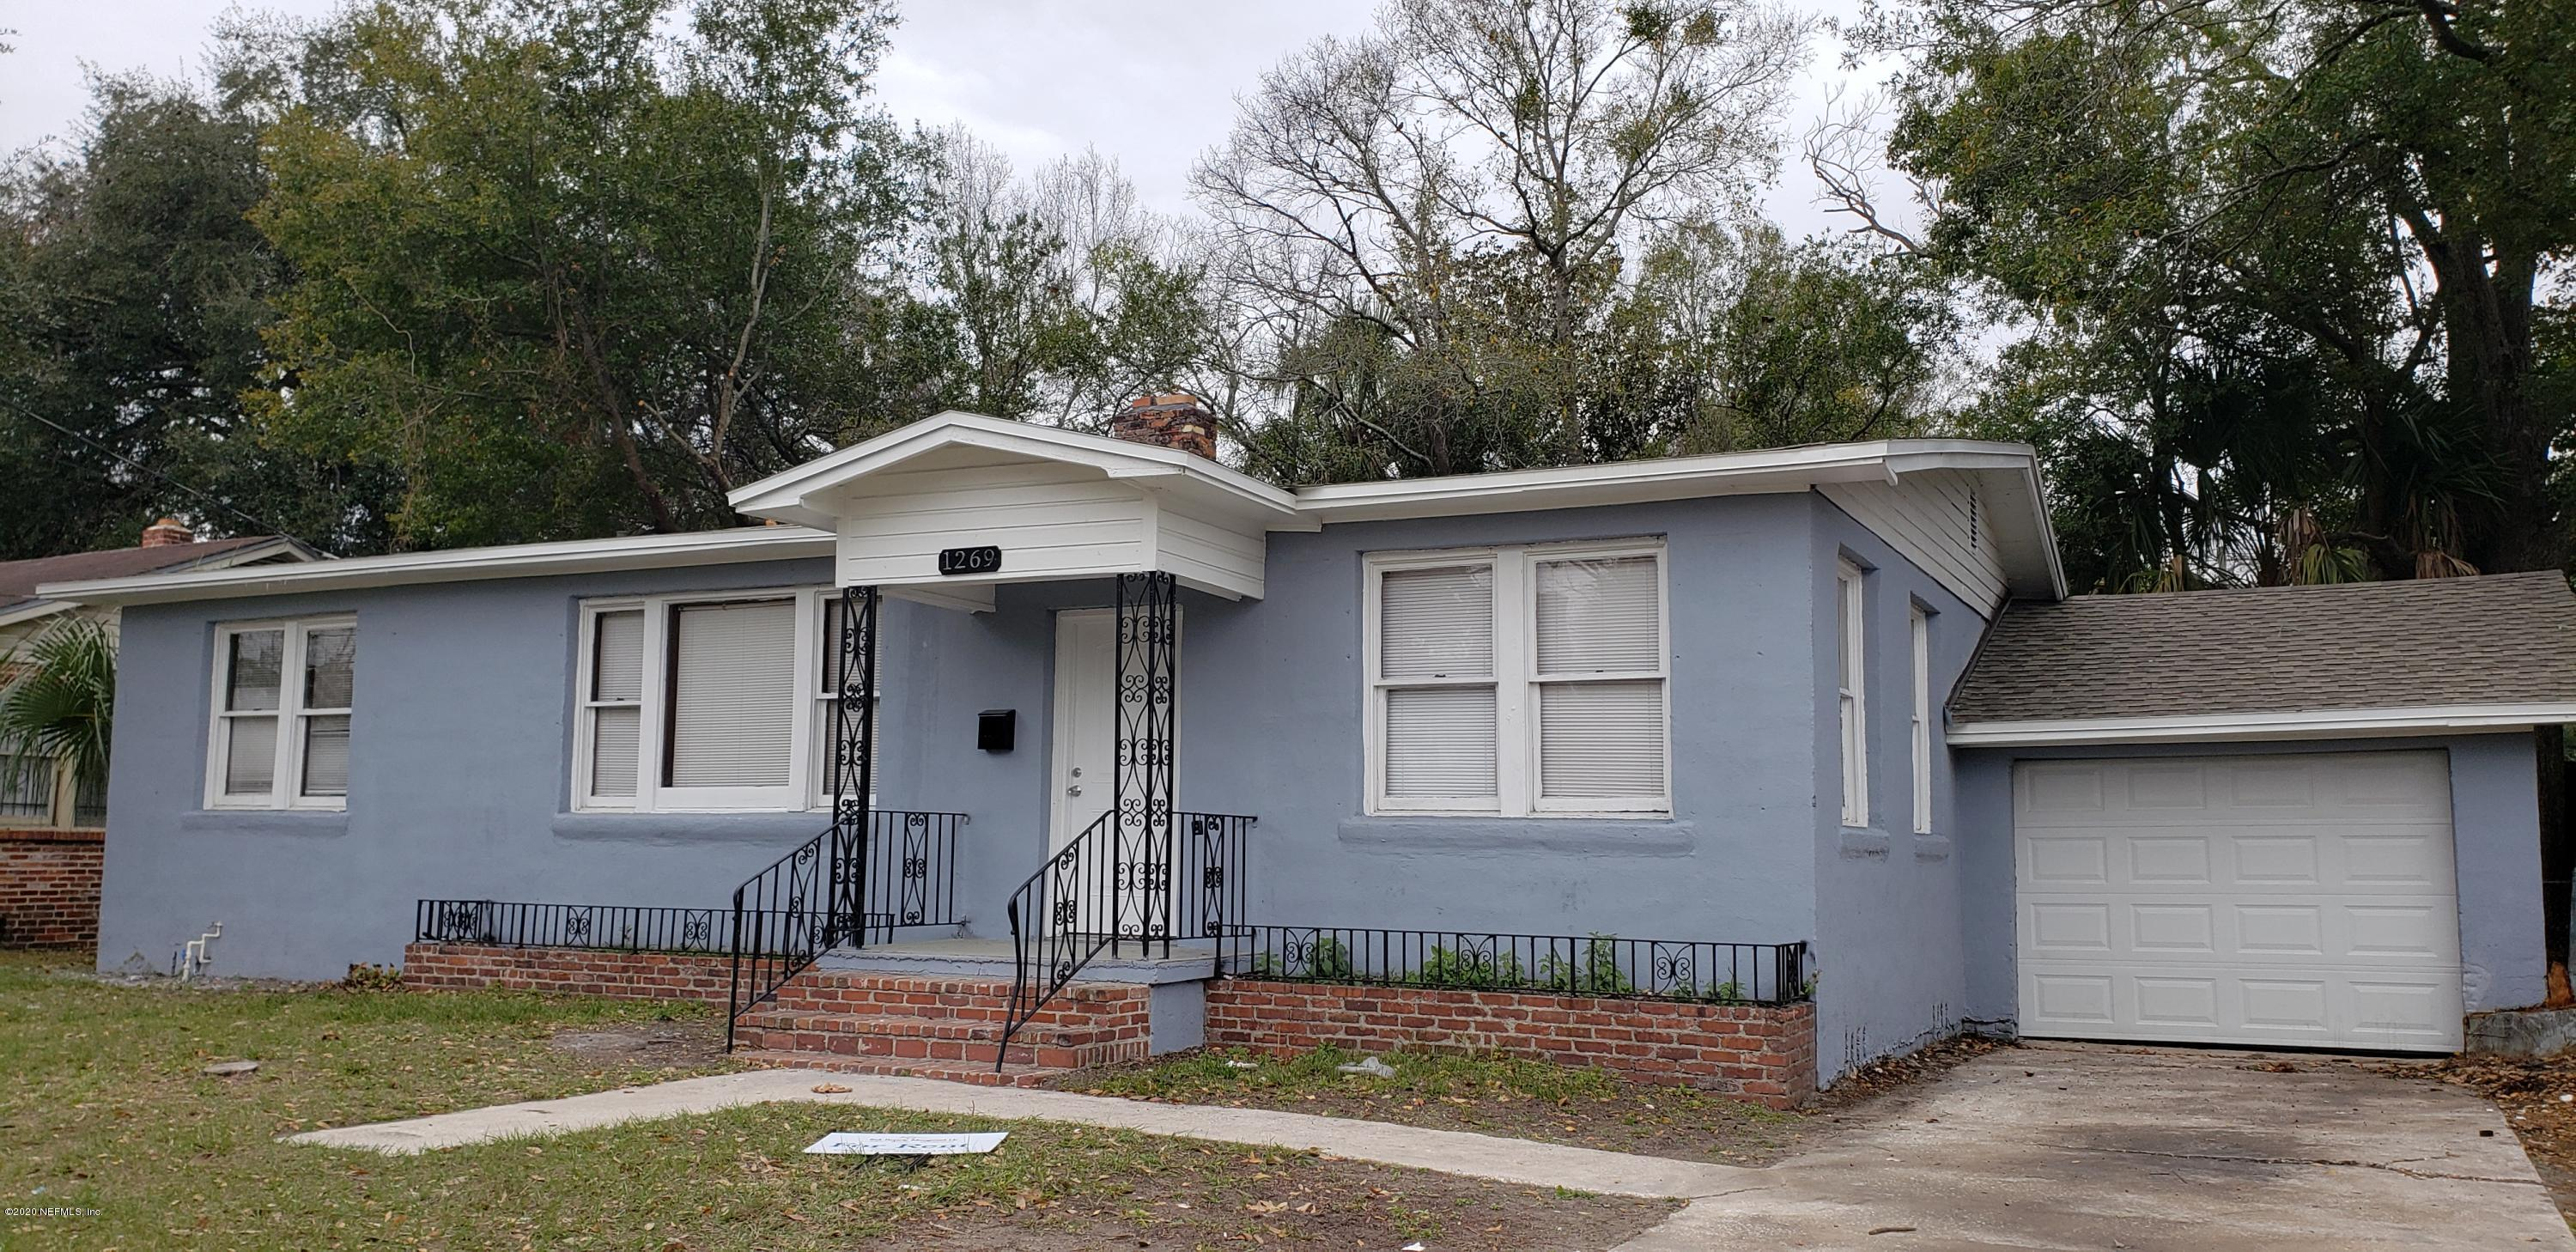 1269 20TH, JACKSONVILLE, FLORIDA 32209, 3 Bedrooms Bedrooms, ,2 BathroomsBathrooms,Investment / MultiFamily,For sale,20TH,1036185